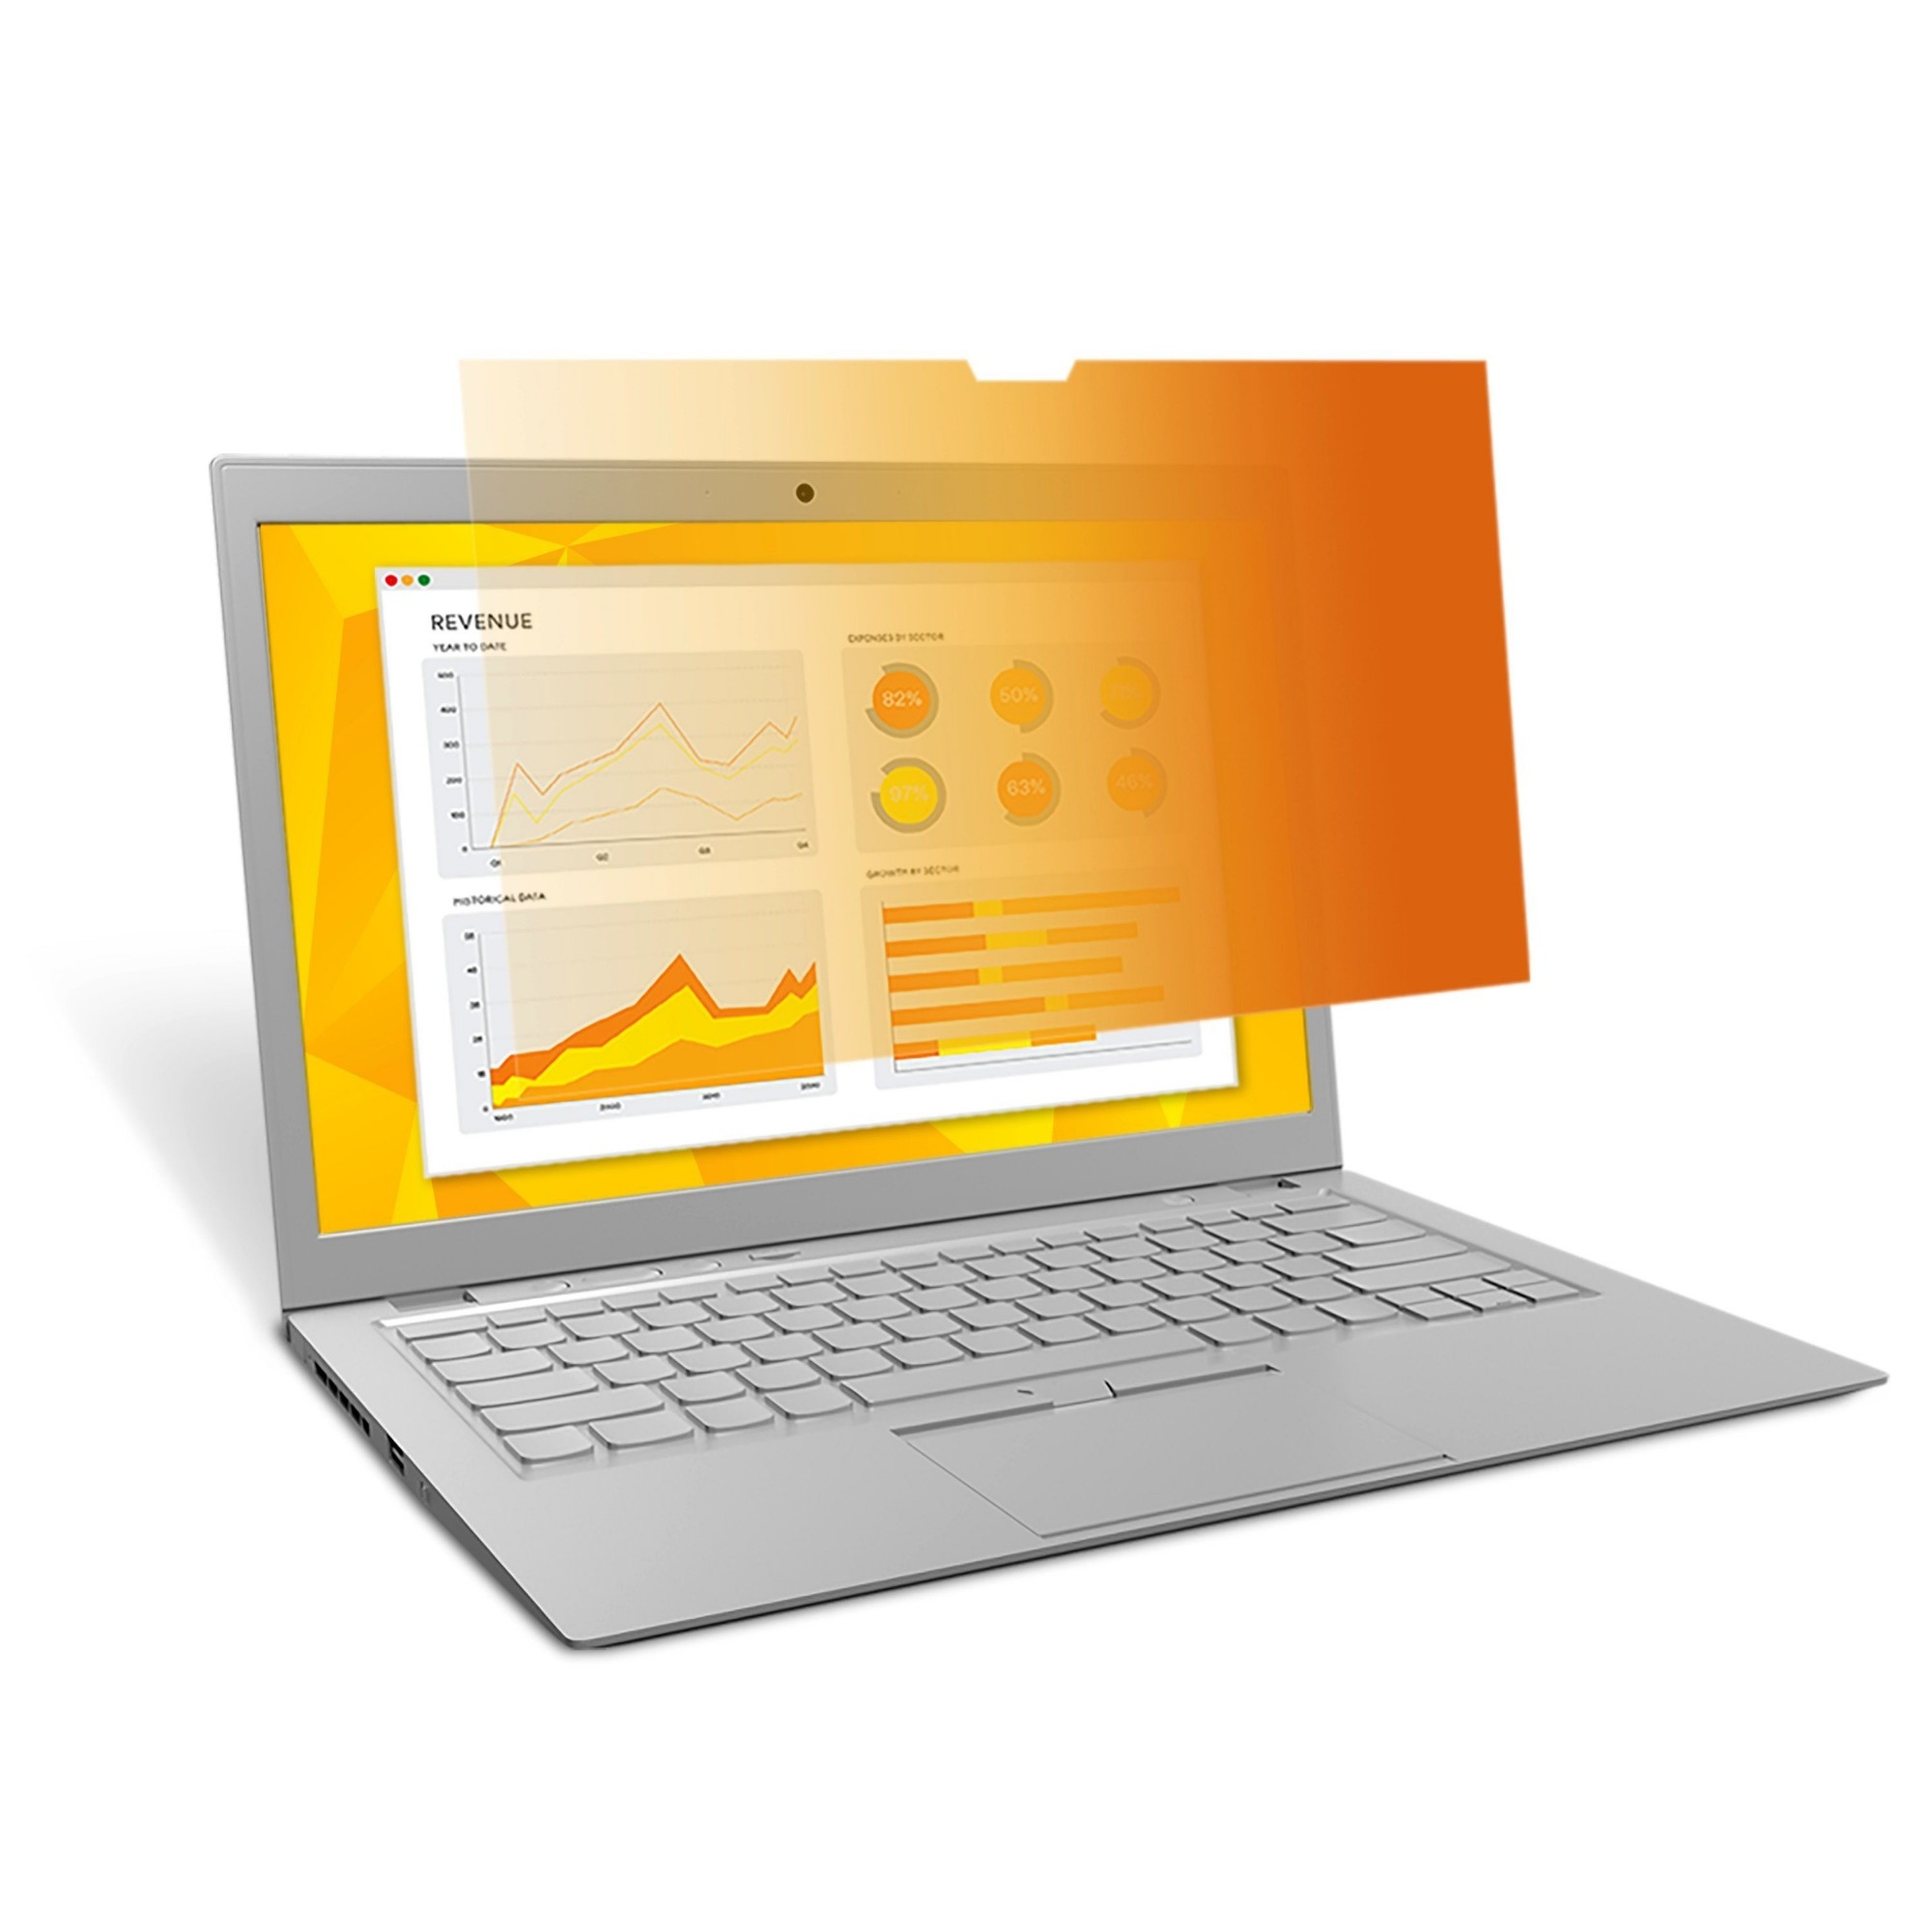 "3M Gold Privacy Filter for 15.6"" Widescreen Laptop"